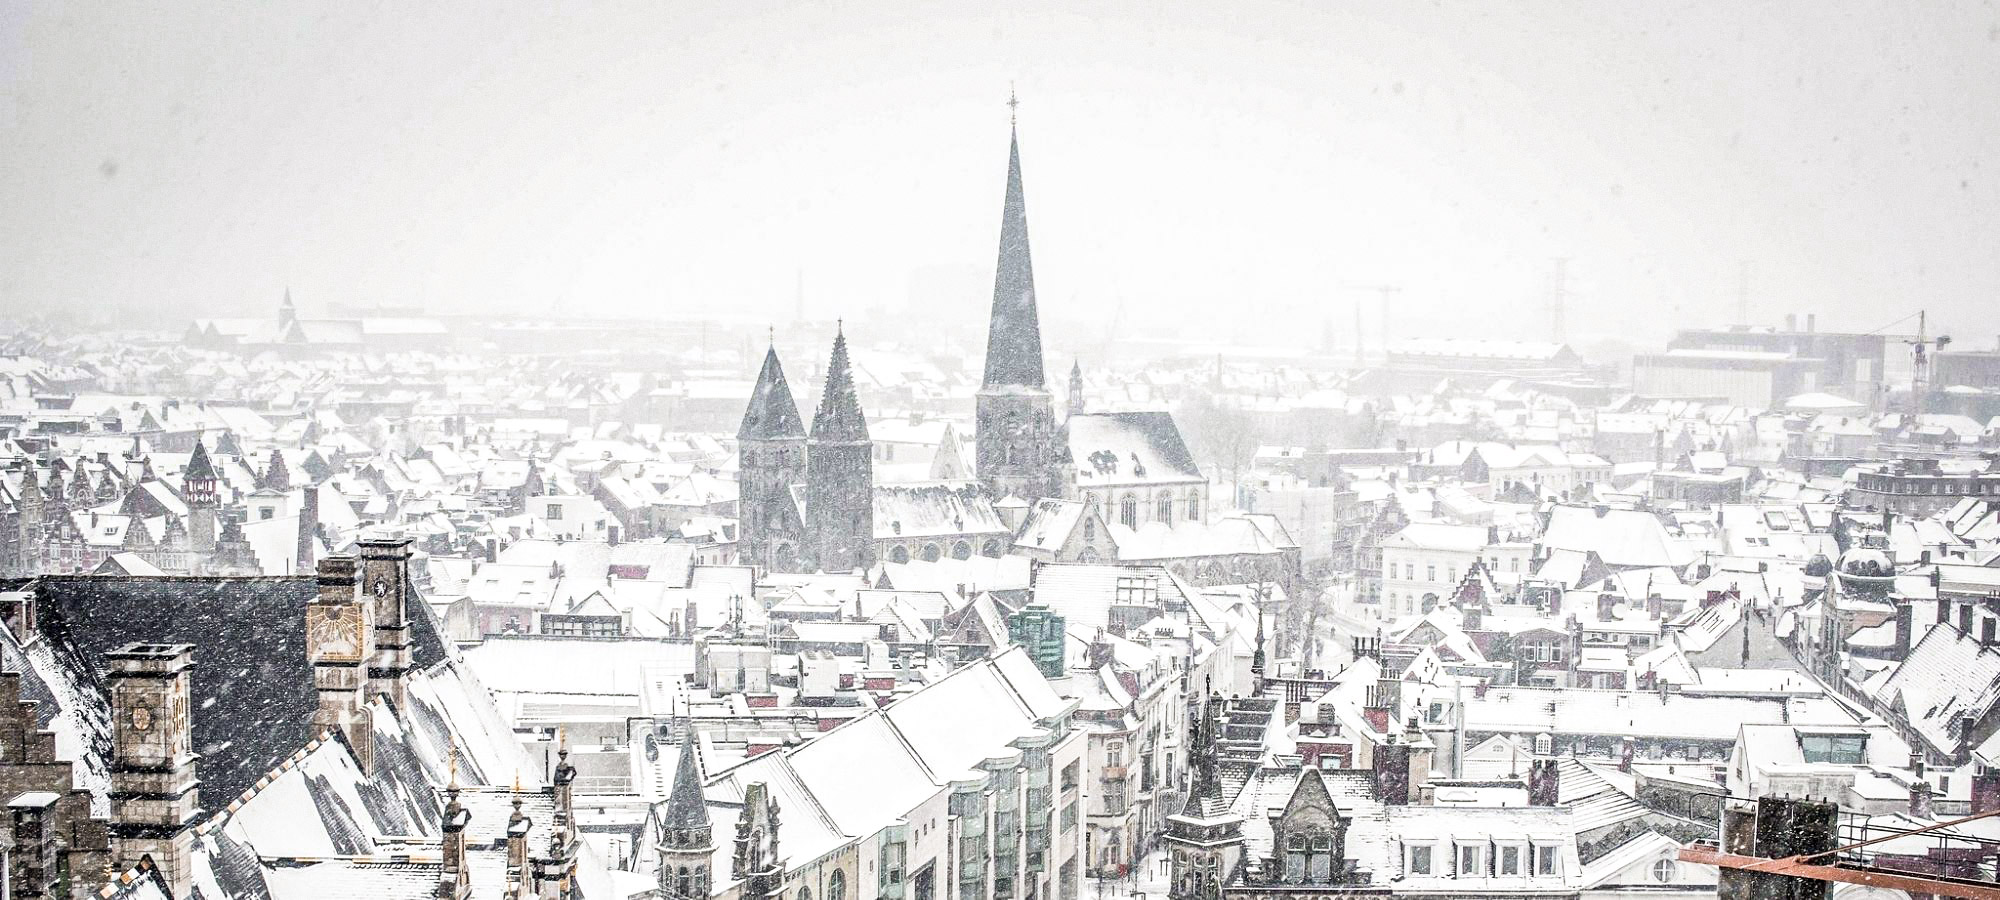 Snow over the city, St Nicholas Church, and dragon belfry in Gent, Belgium